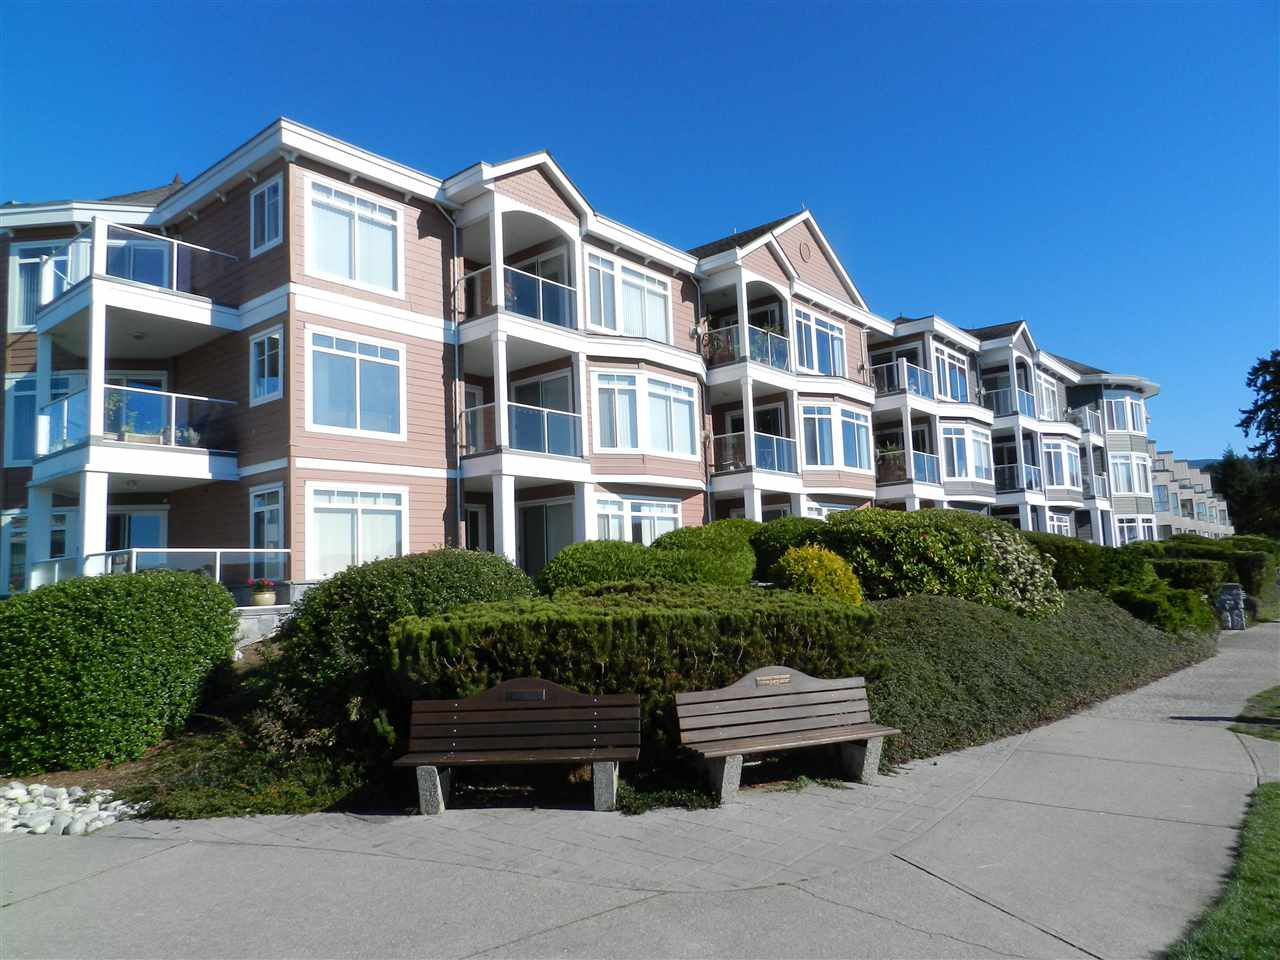 Main Photo: 206 5470 INLET AVENUE in Sechelt: Sechelt District Condo for sale (Sunshine Coast)  : MLS®# R2120136